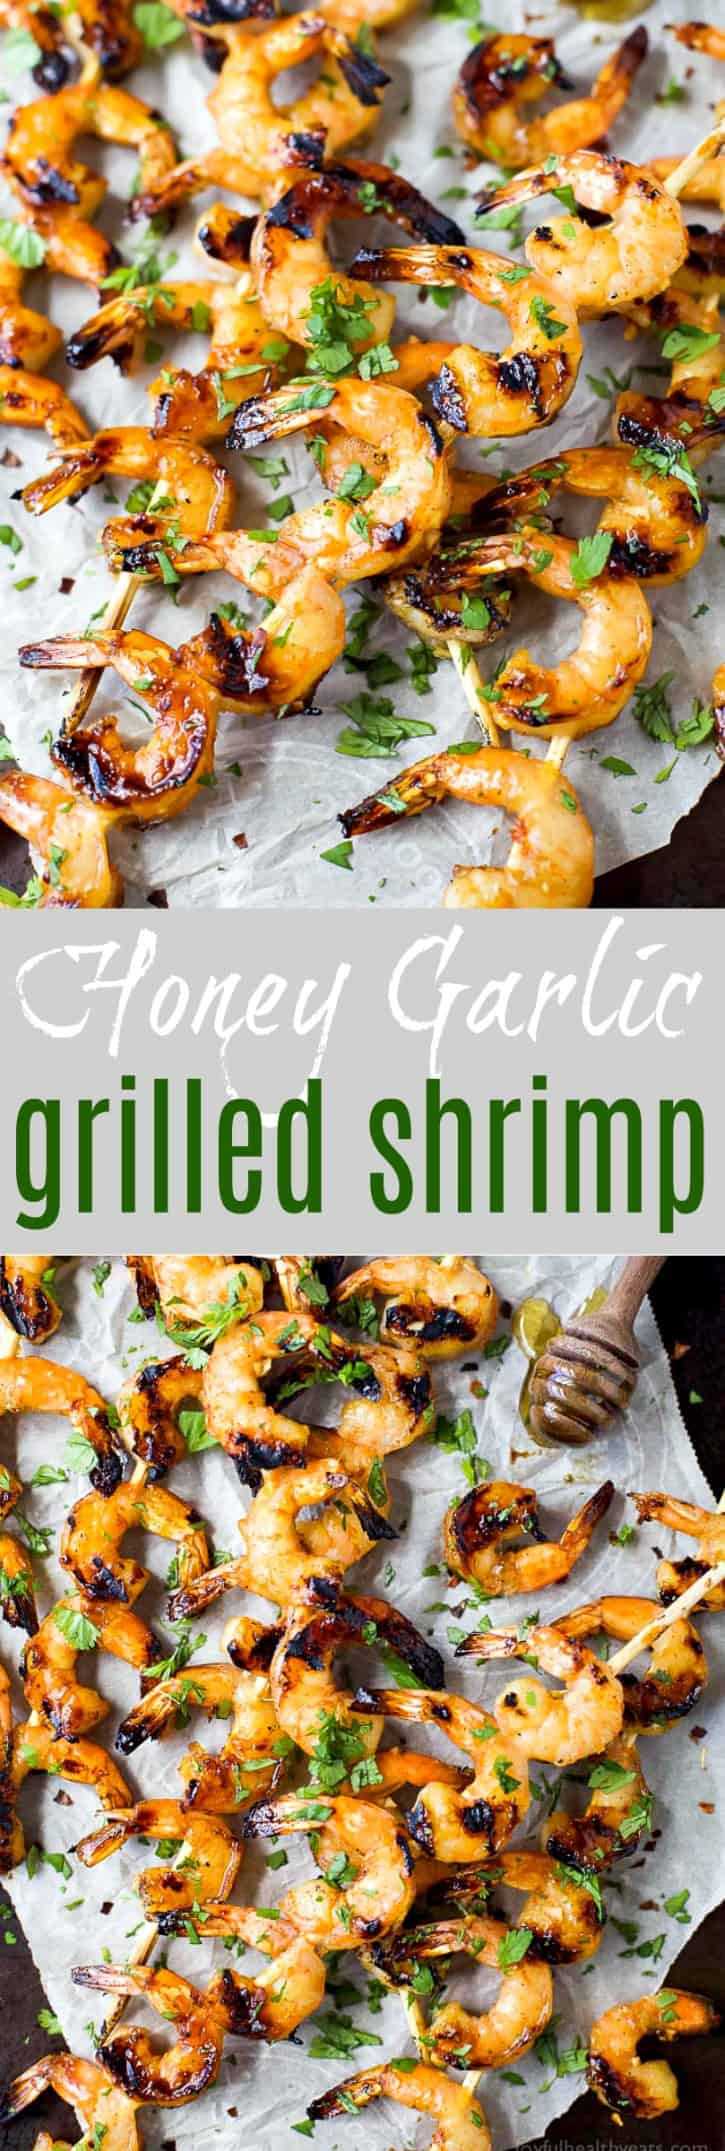 Easy 30 Minute Honey Garlic Grilled Shrimp with only 4 ingredients and full of bold flavors. These grilled shrimp will be a favorite this summer - I guarantee you'll be licking your fingers!